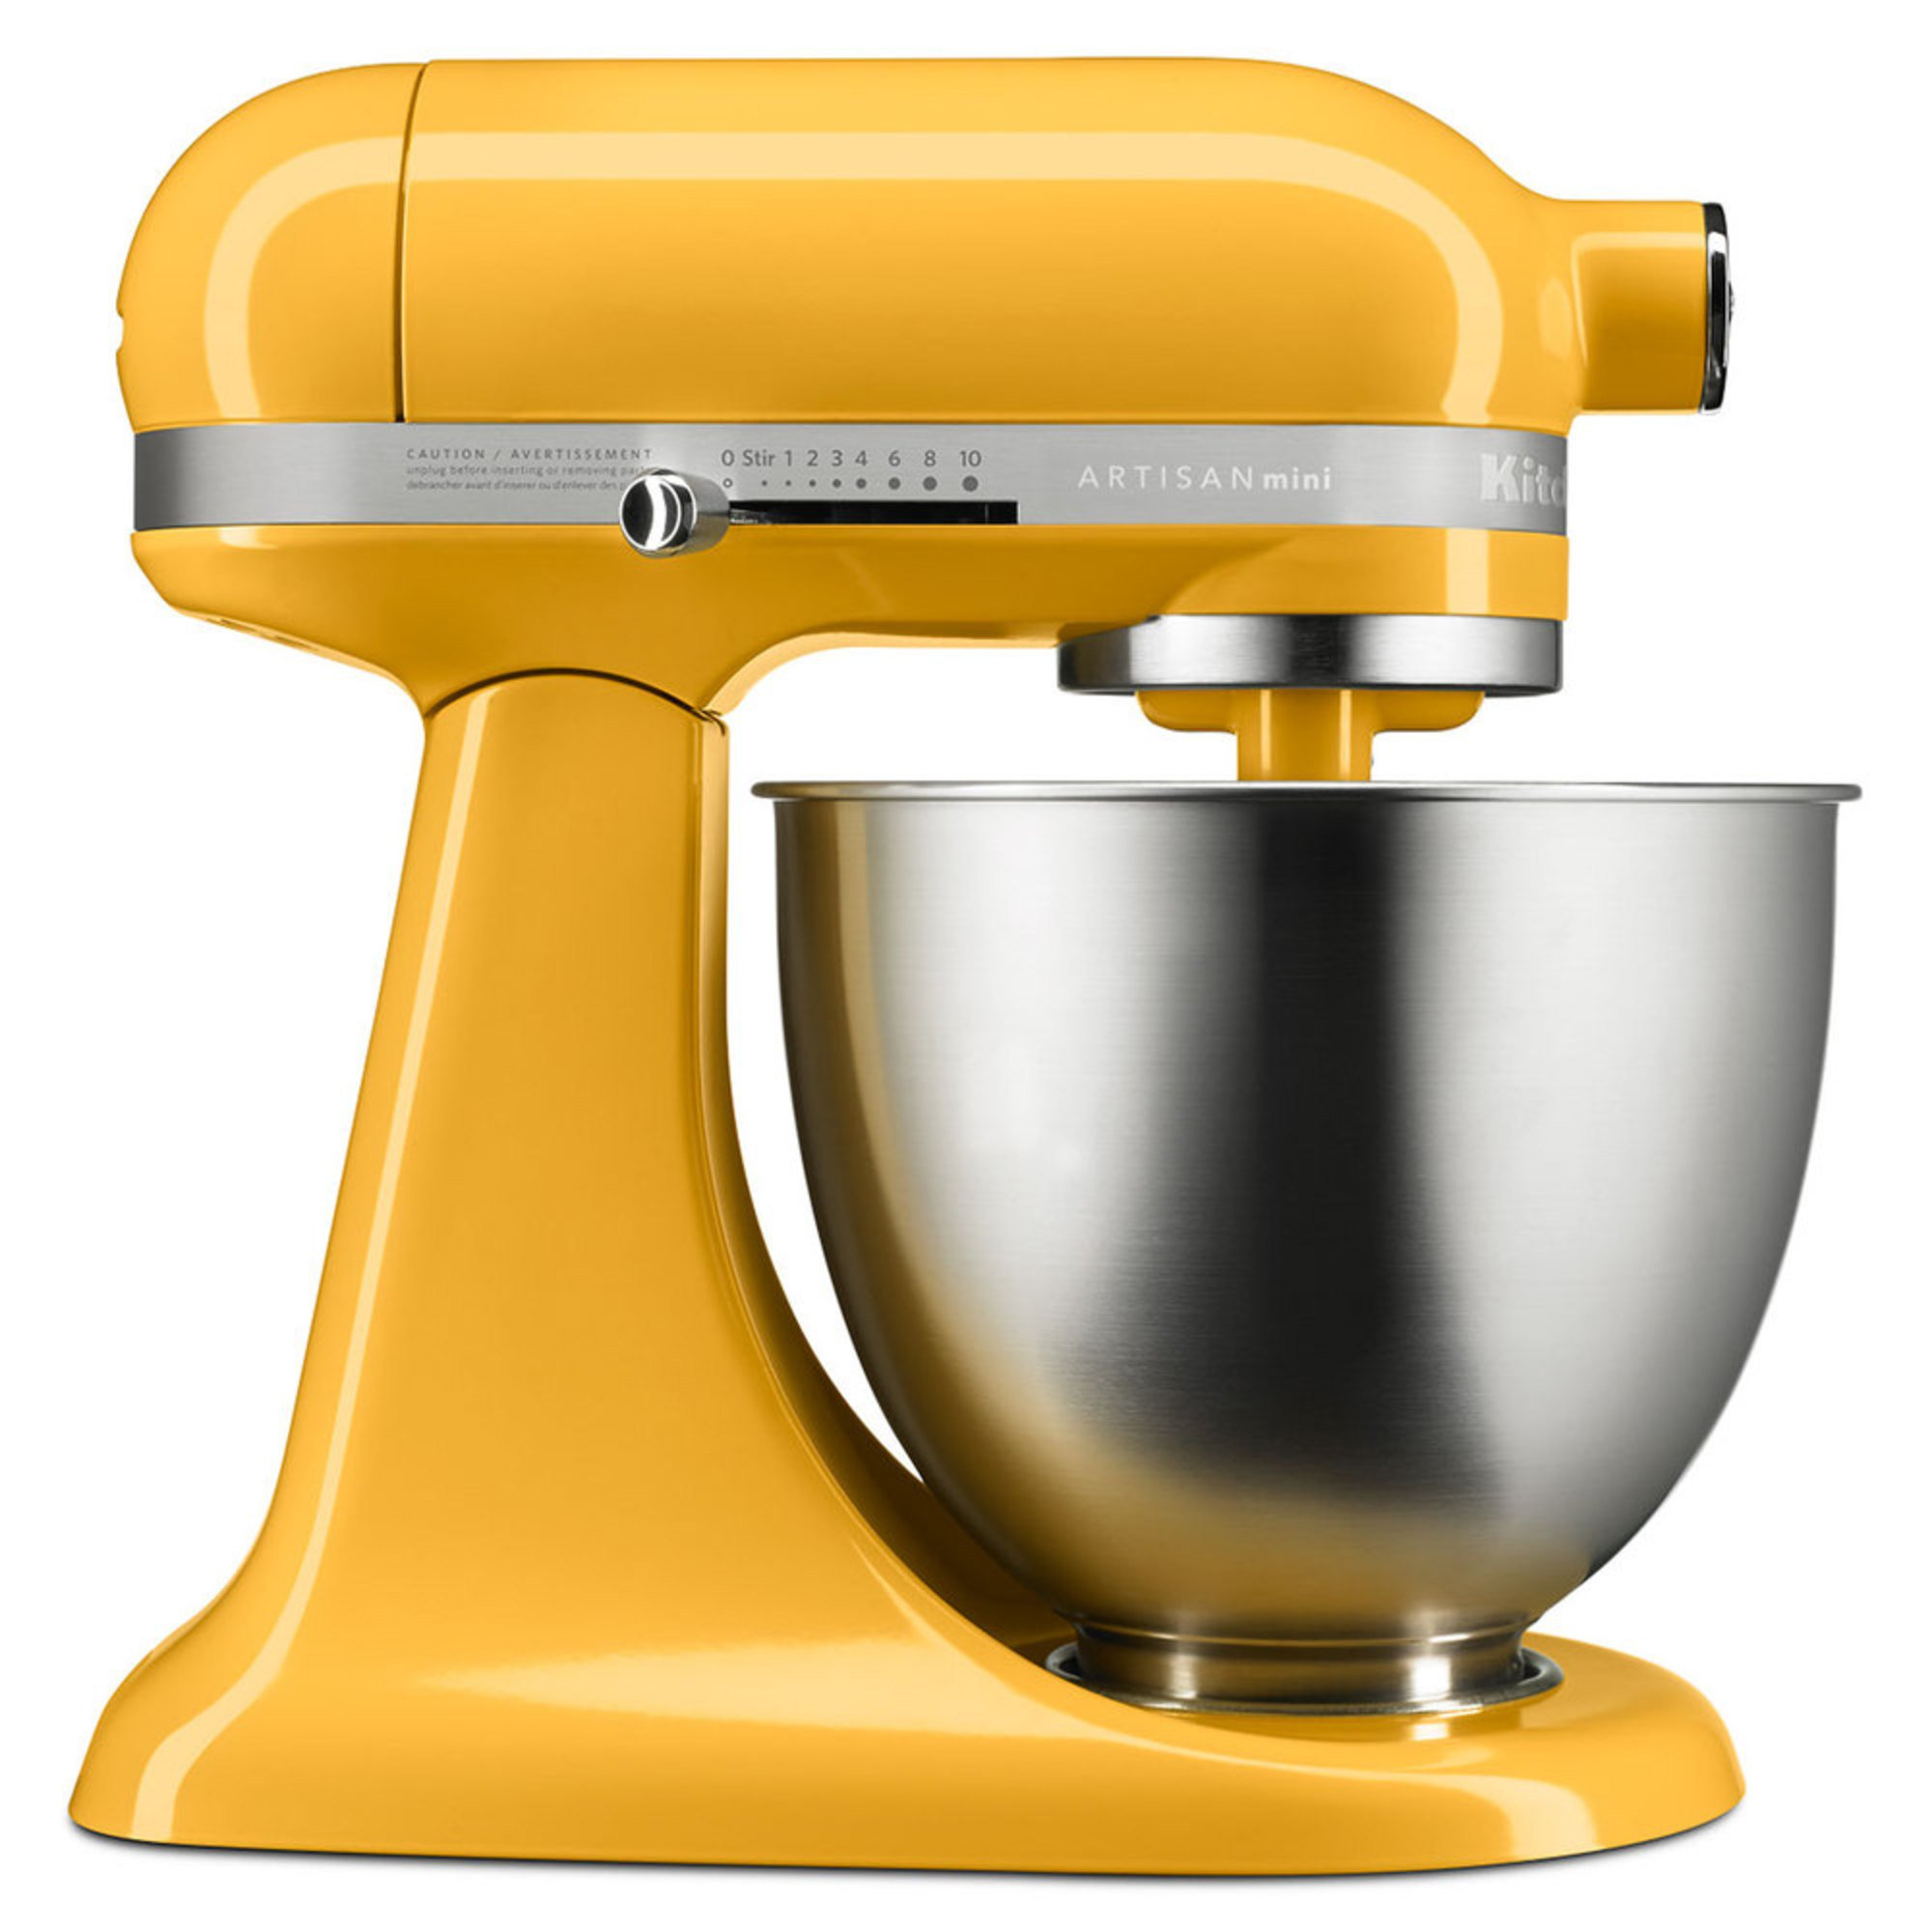 kitchenaid artisan mini 3 5 quart stand mixer orange sorbet ksm3311xbf stand mixers for. Black Bedroom Furniture Sets. Home Design Ideas